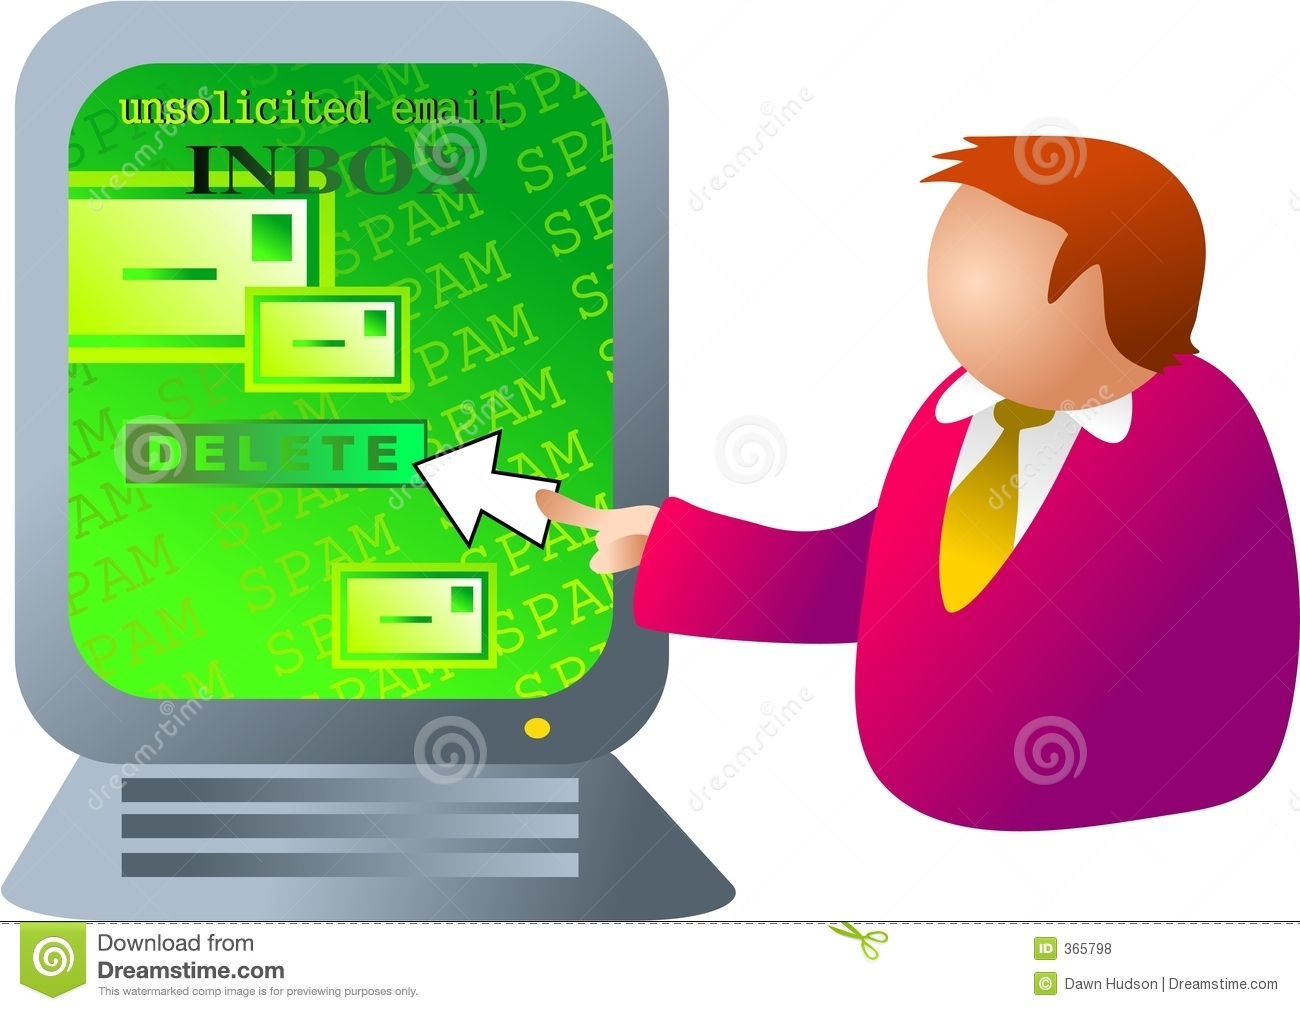 Computer Spam Royalty Free Stock Photos - Image: 365798